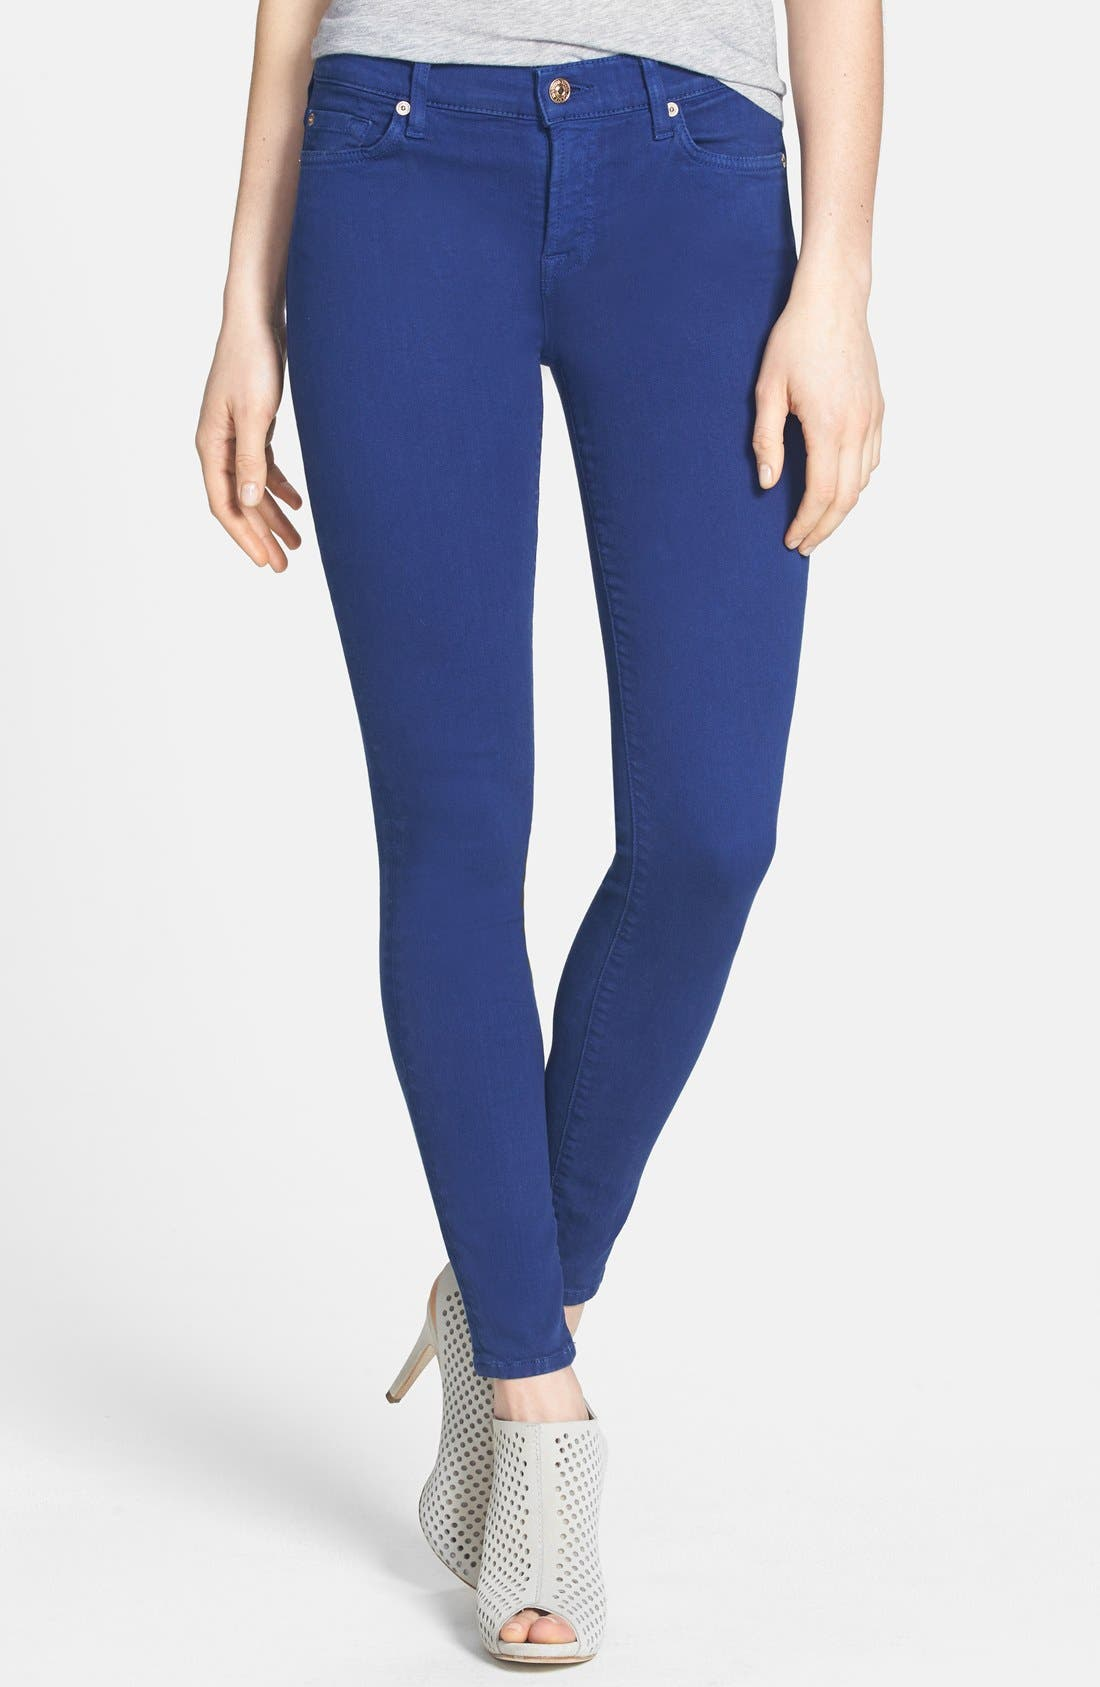 Alternate Image 1 Selected - 7 For All Mankind® 'The Ankle Skinny' Jeans (Sapphire)